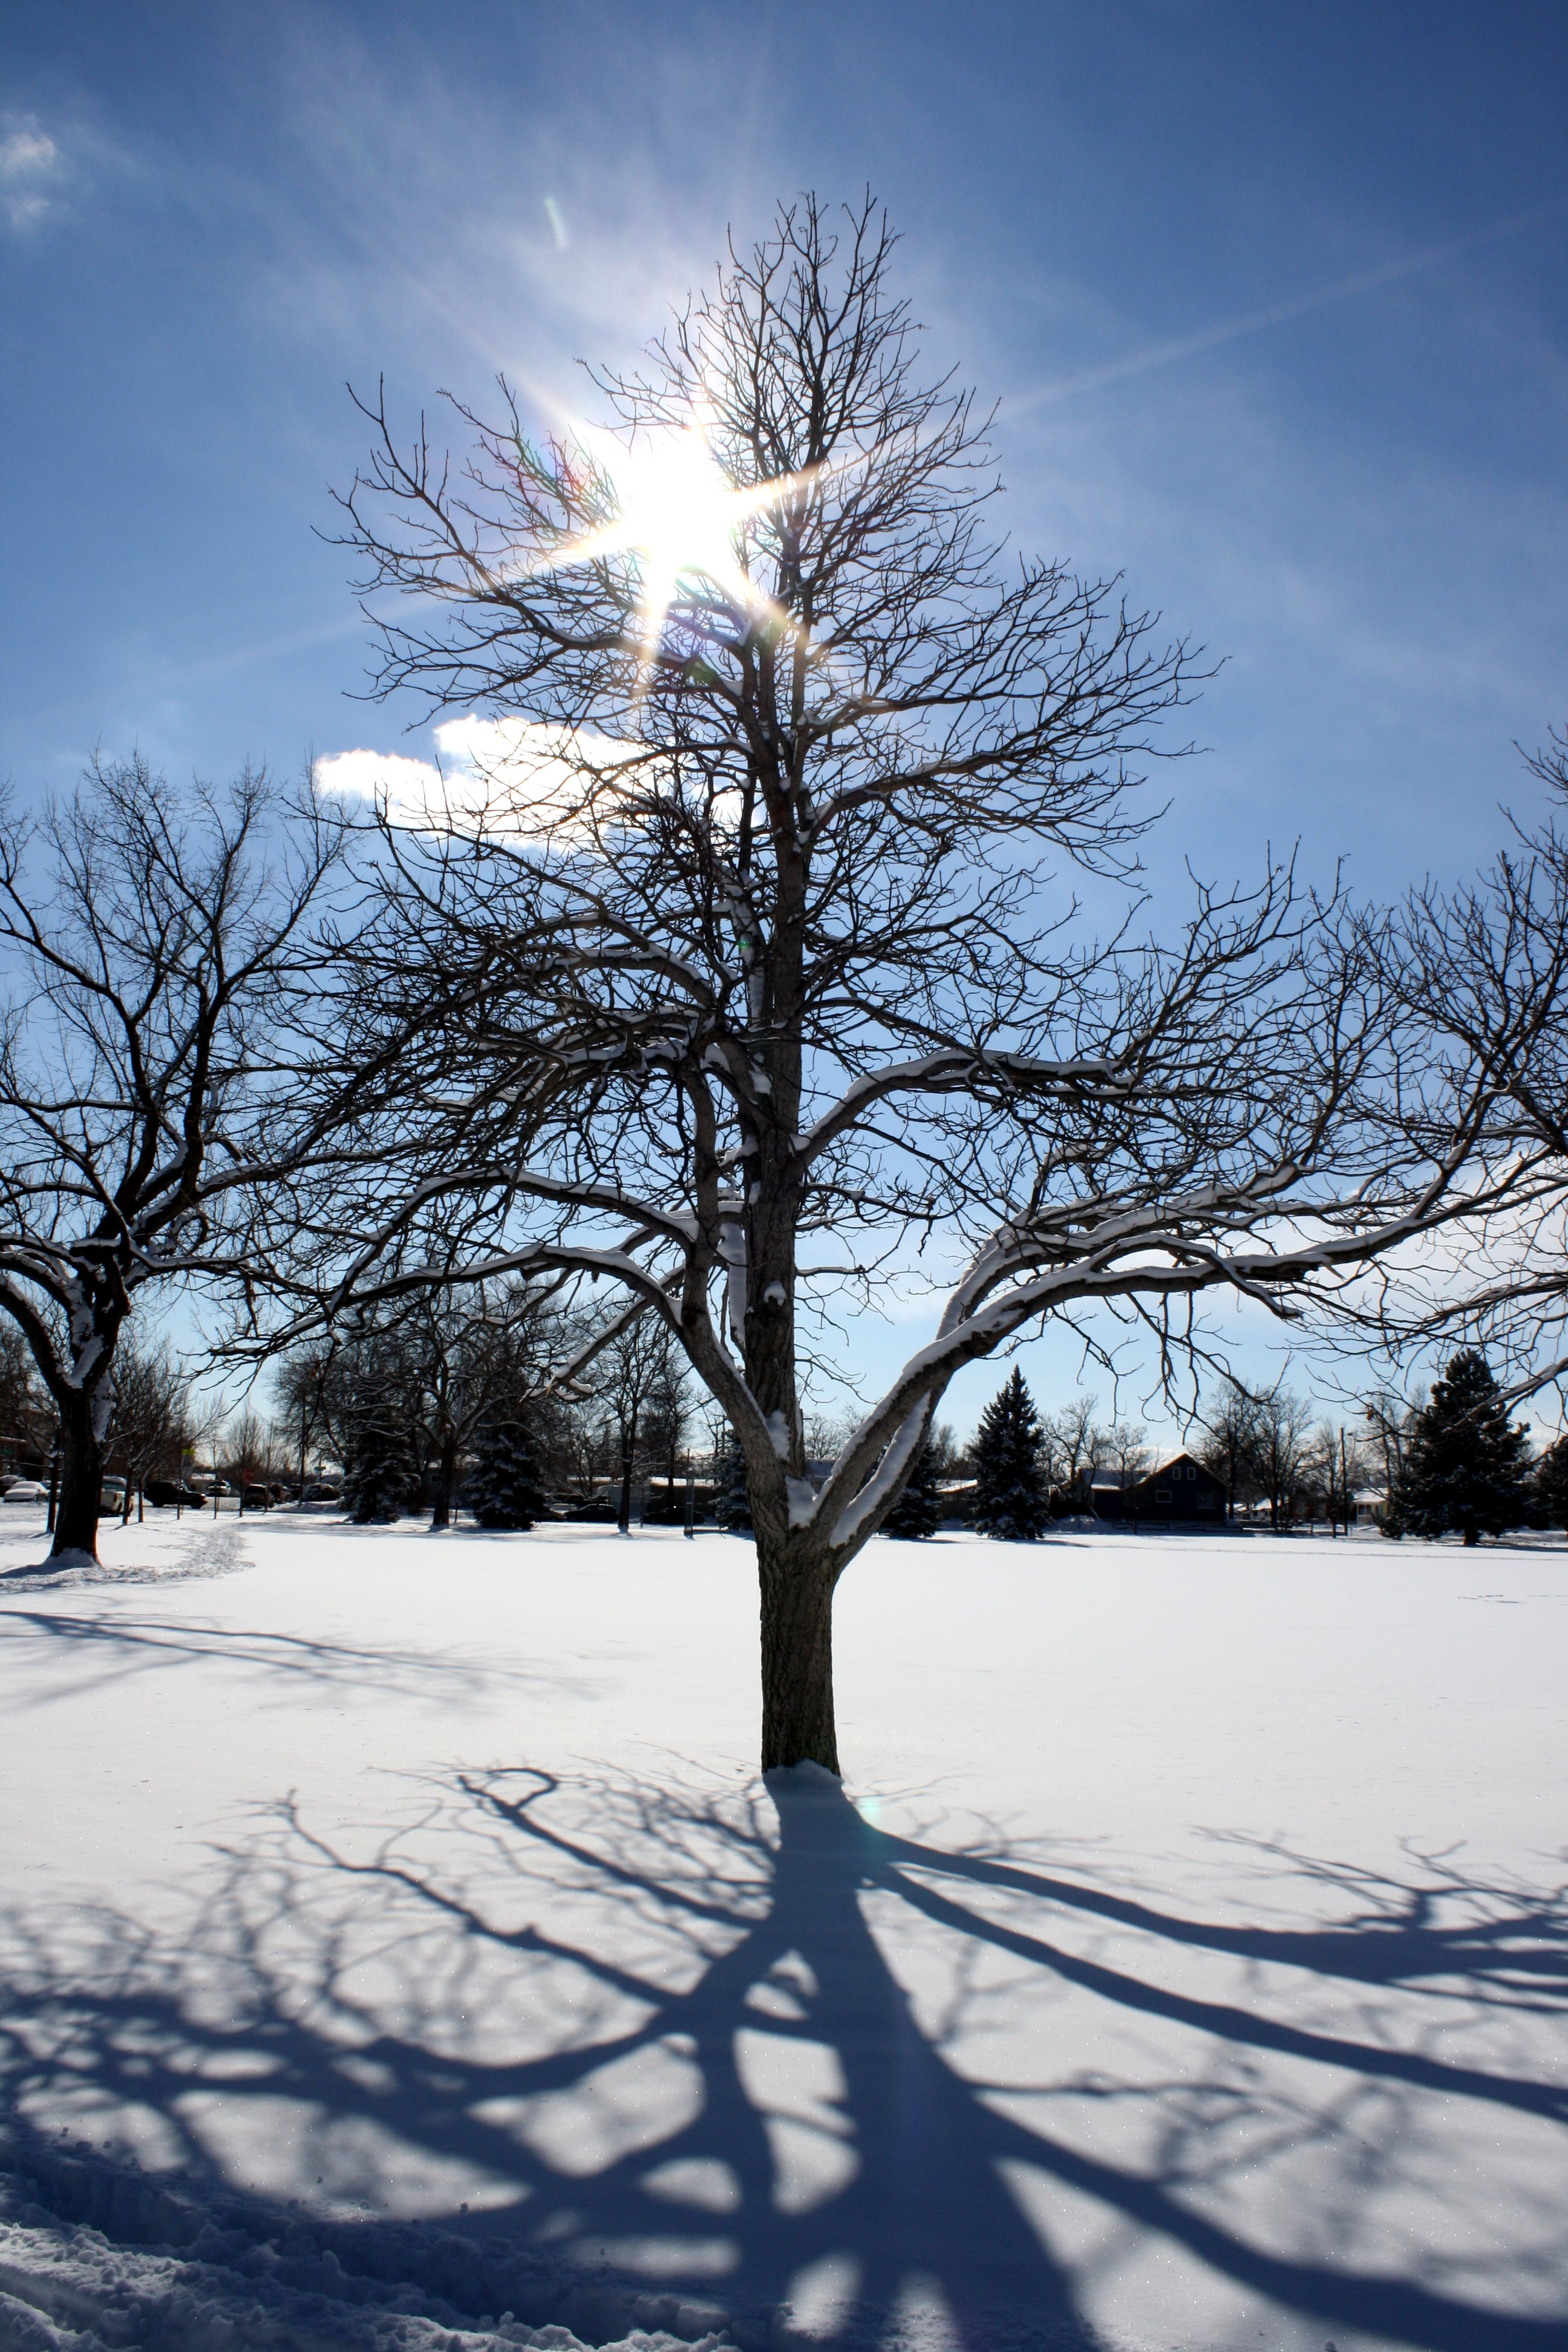 Sun Through Winter Tree Branches Picture Free Photograph